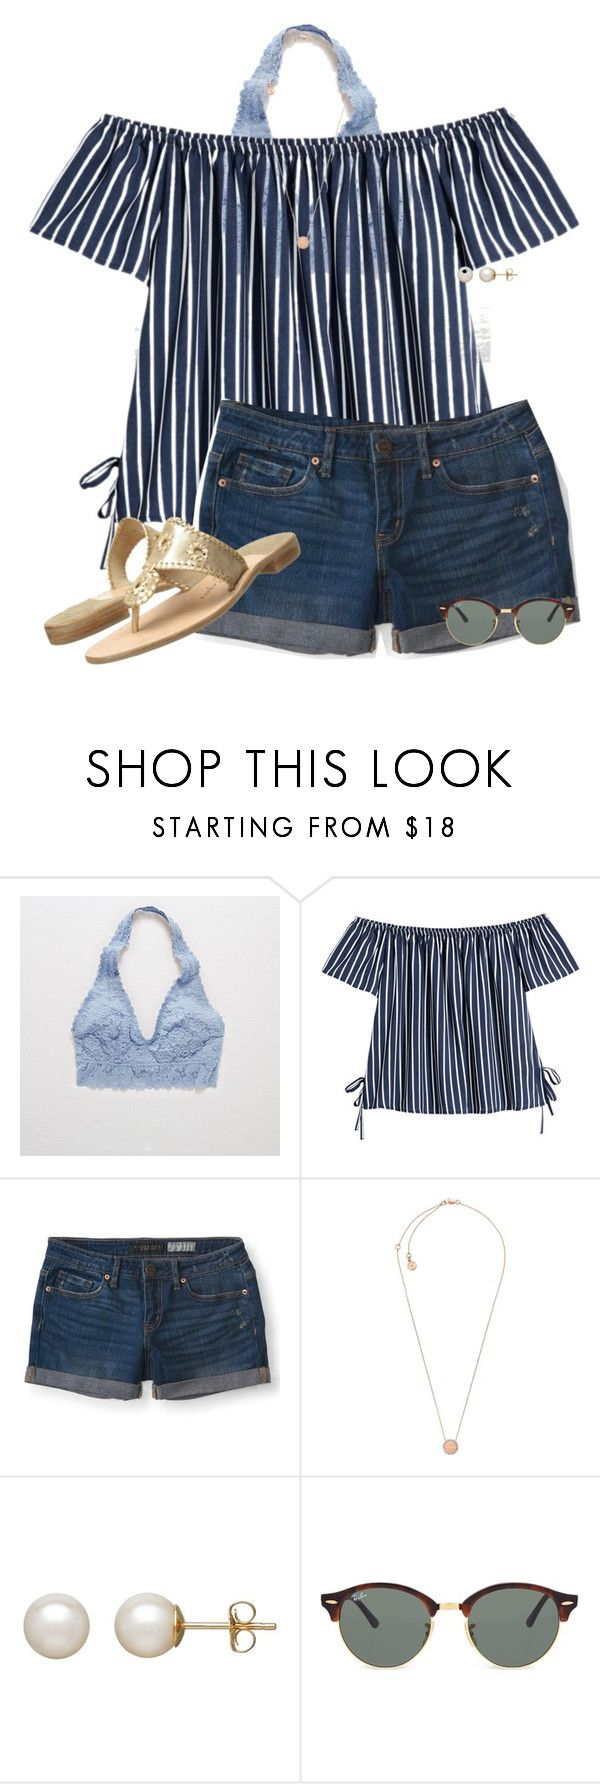 """""""Flying home tomorrow✈️"""" by auburnlady ❤ liked on Polyvore featuring Aerie, Aéropostale, Michael Kors, Honora, Ray-Ban and Jack Rogers"""